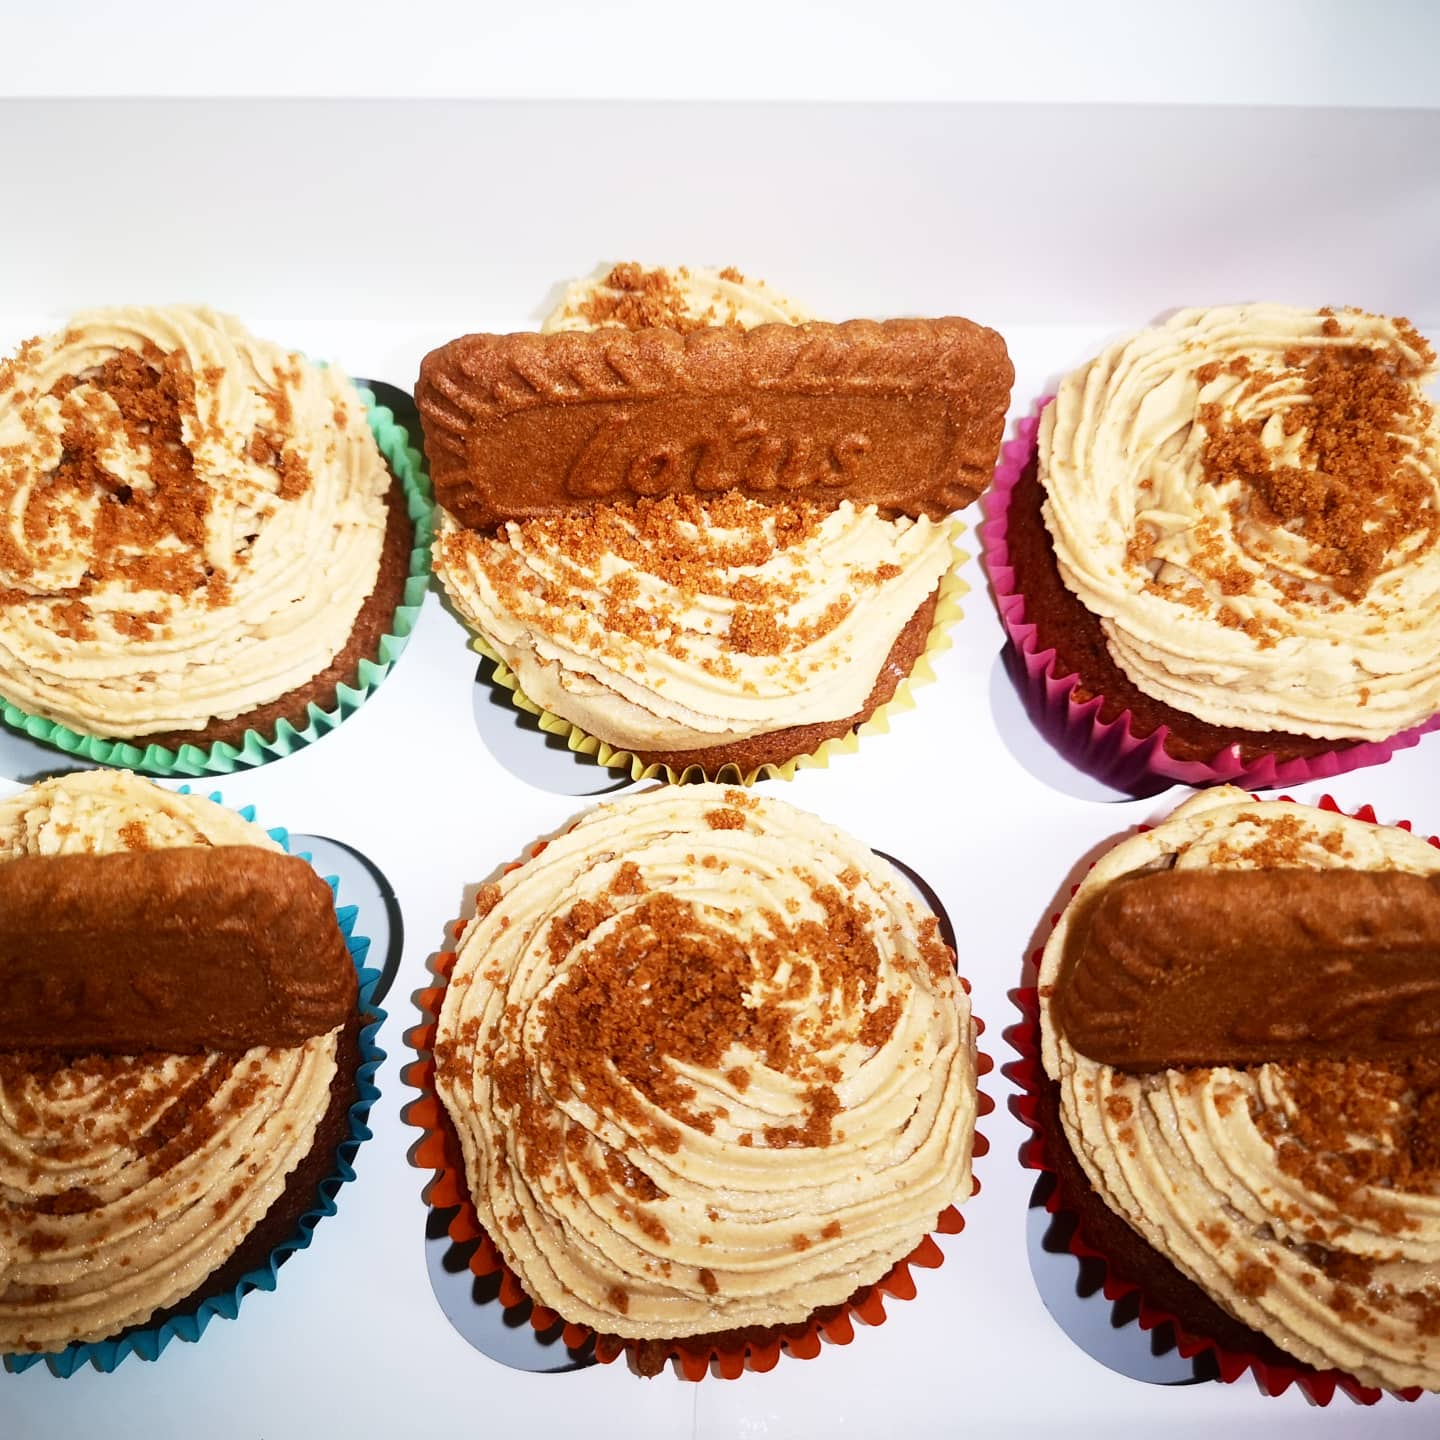 Lotus biscuit cupcakes in sit in a white takeaway box